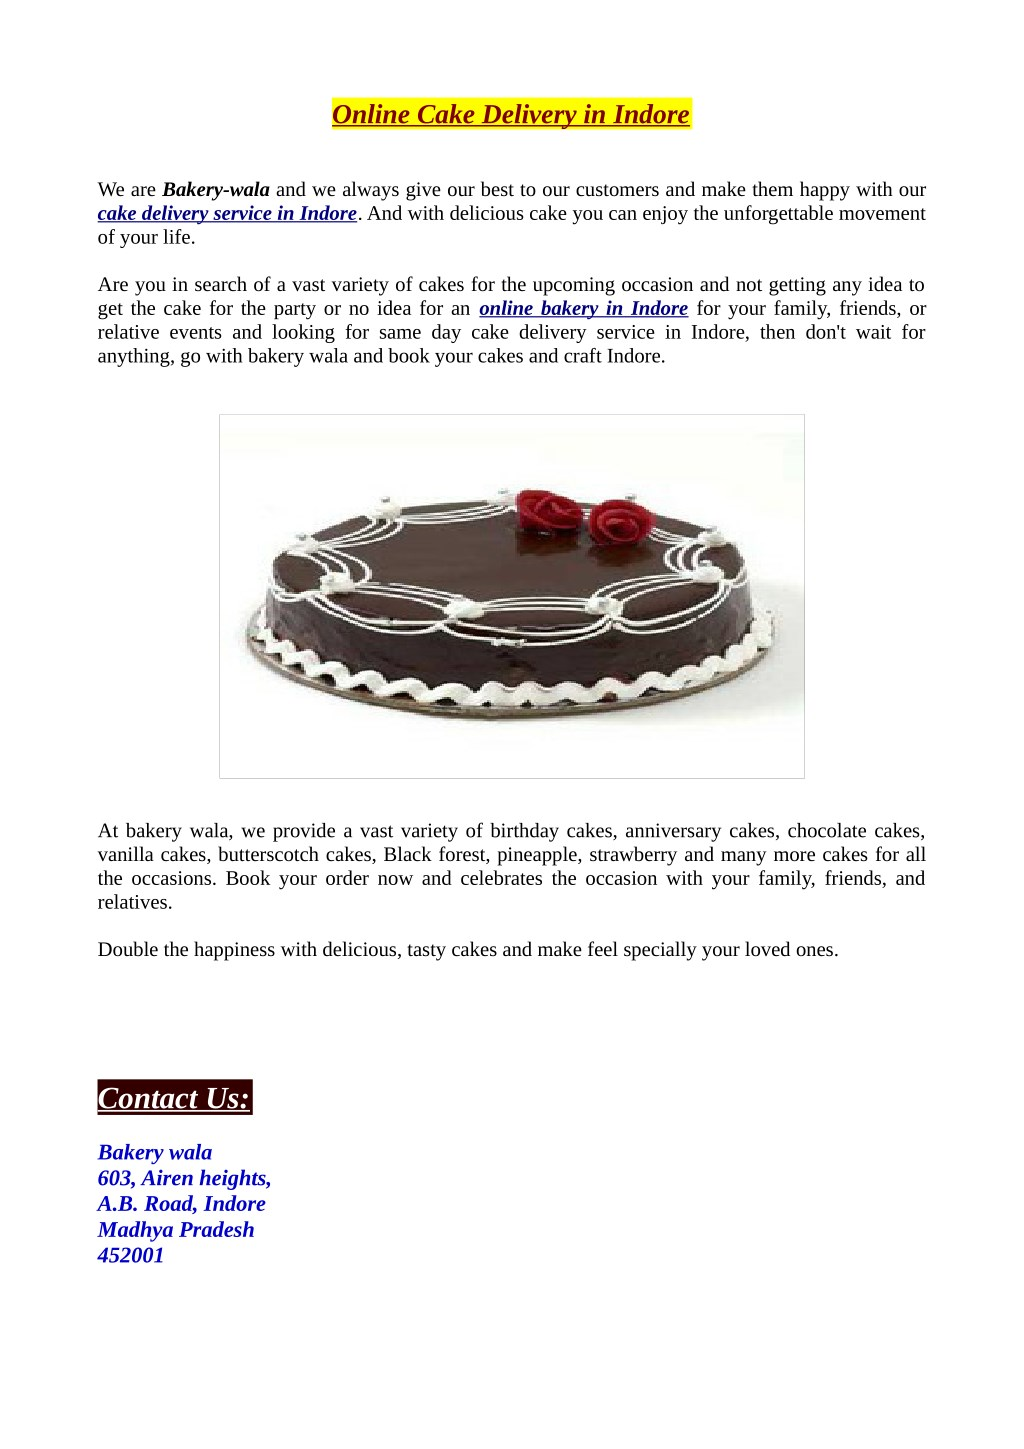 Online Cake Delivery In Indore N